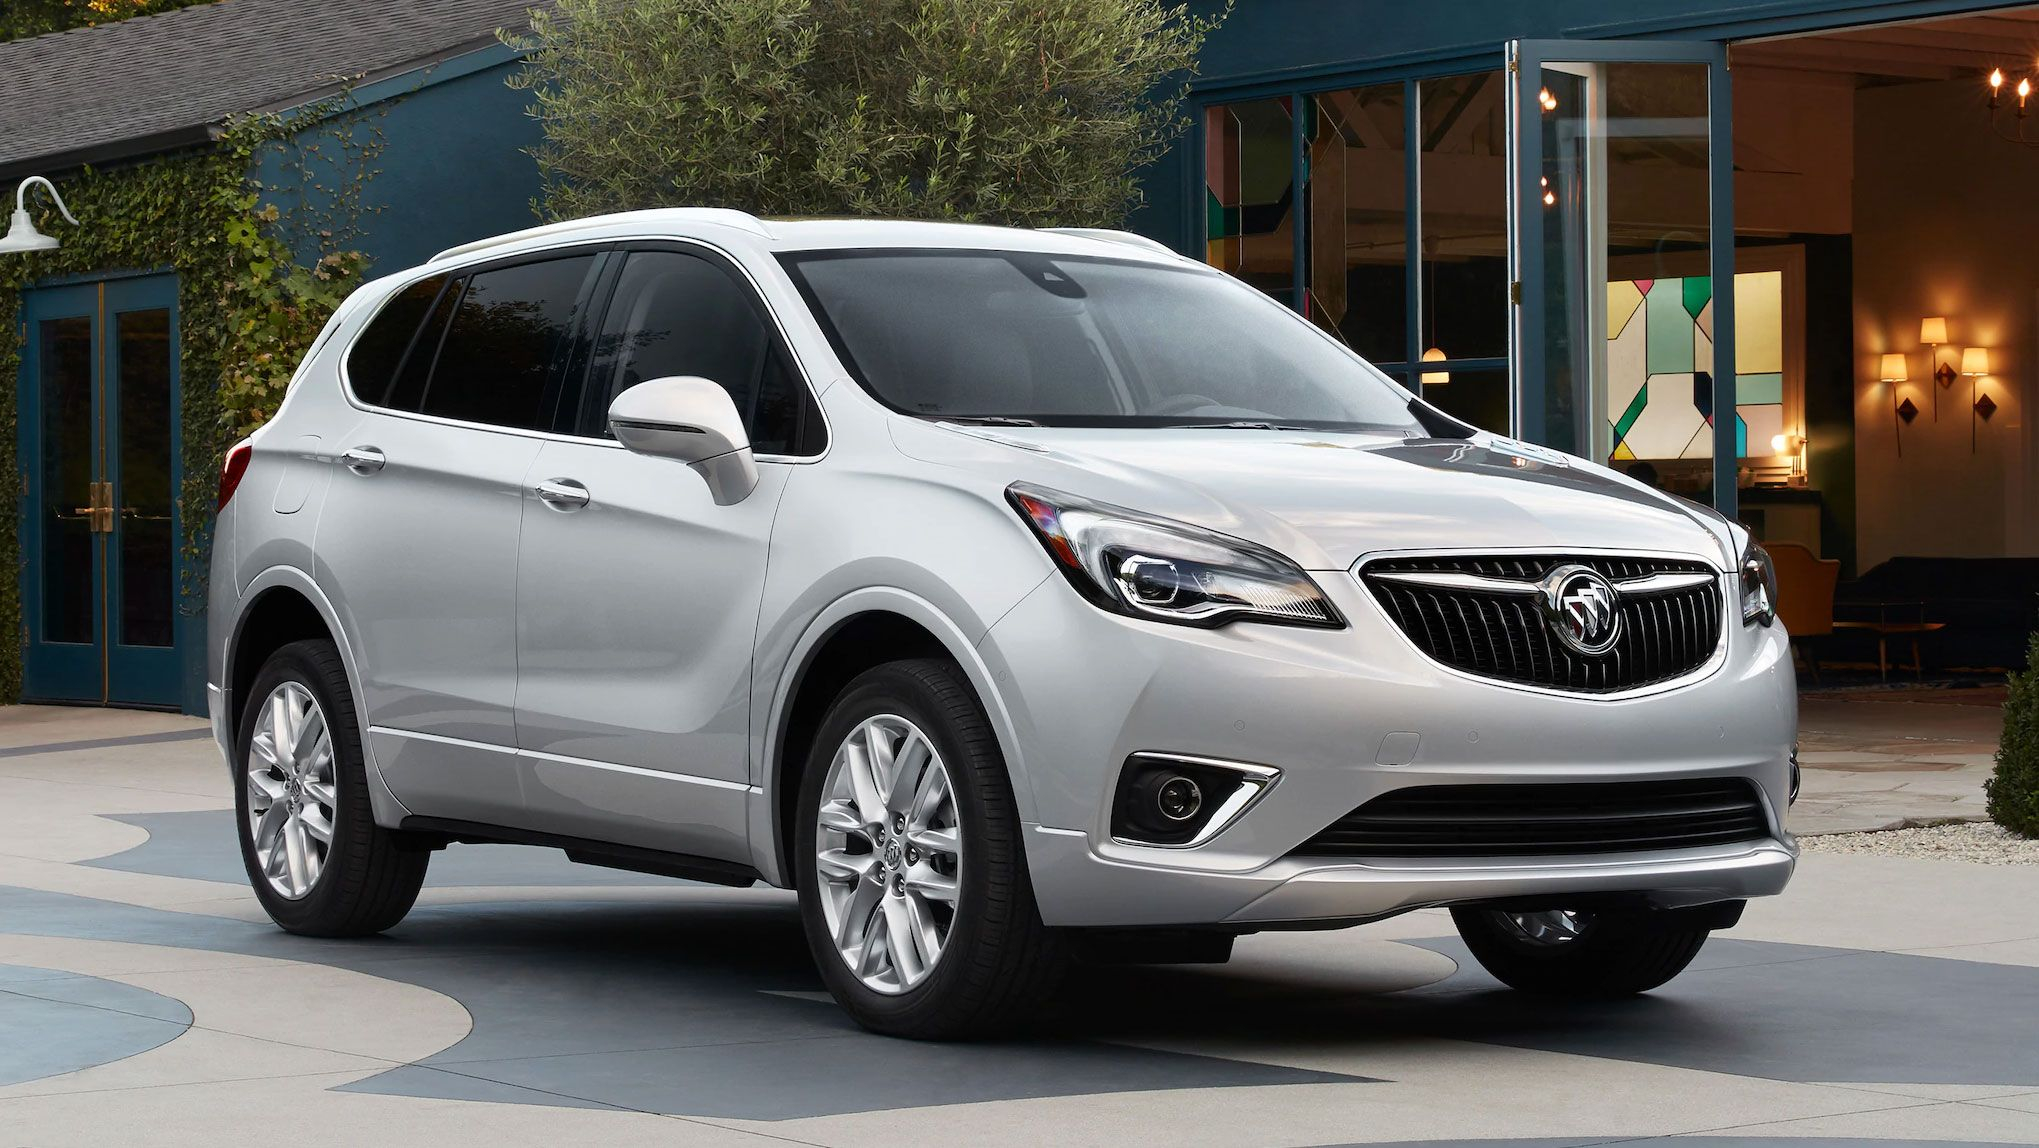 2020 Buick Envision Review, Pricing, And Specs 2021 Buick Envision Specifications, Safety Features, Towing Capacity